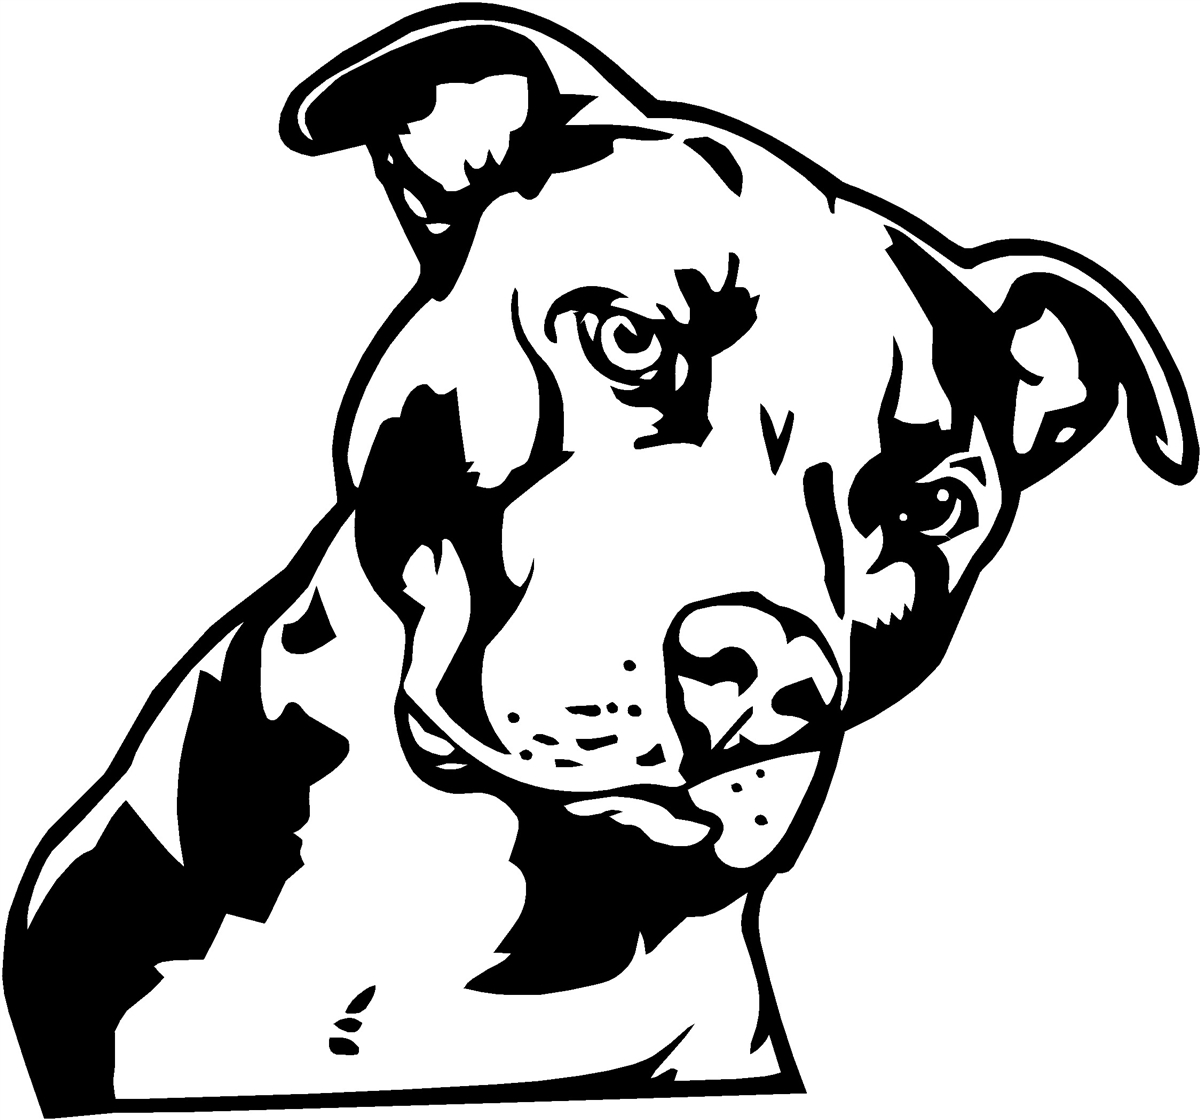 Pitbull clipart #20, Download drawings